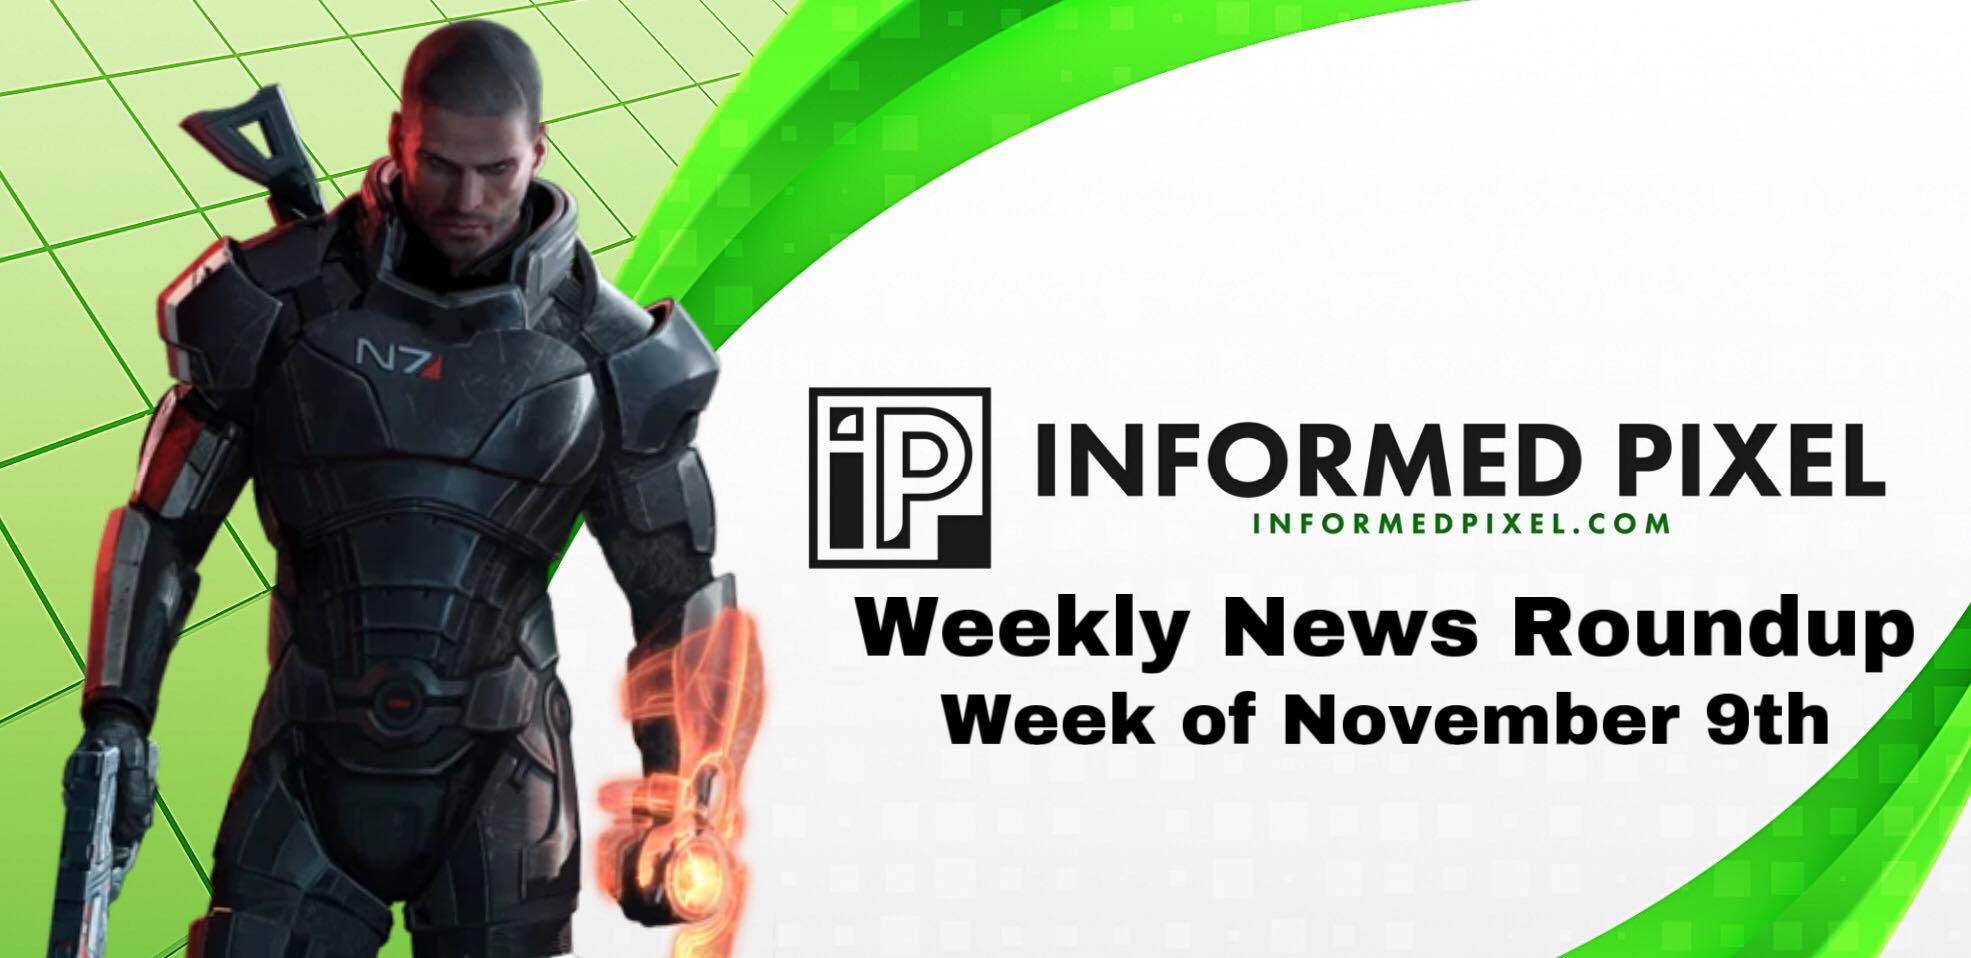 Weekly News Roundup – Week of November 9th